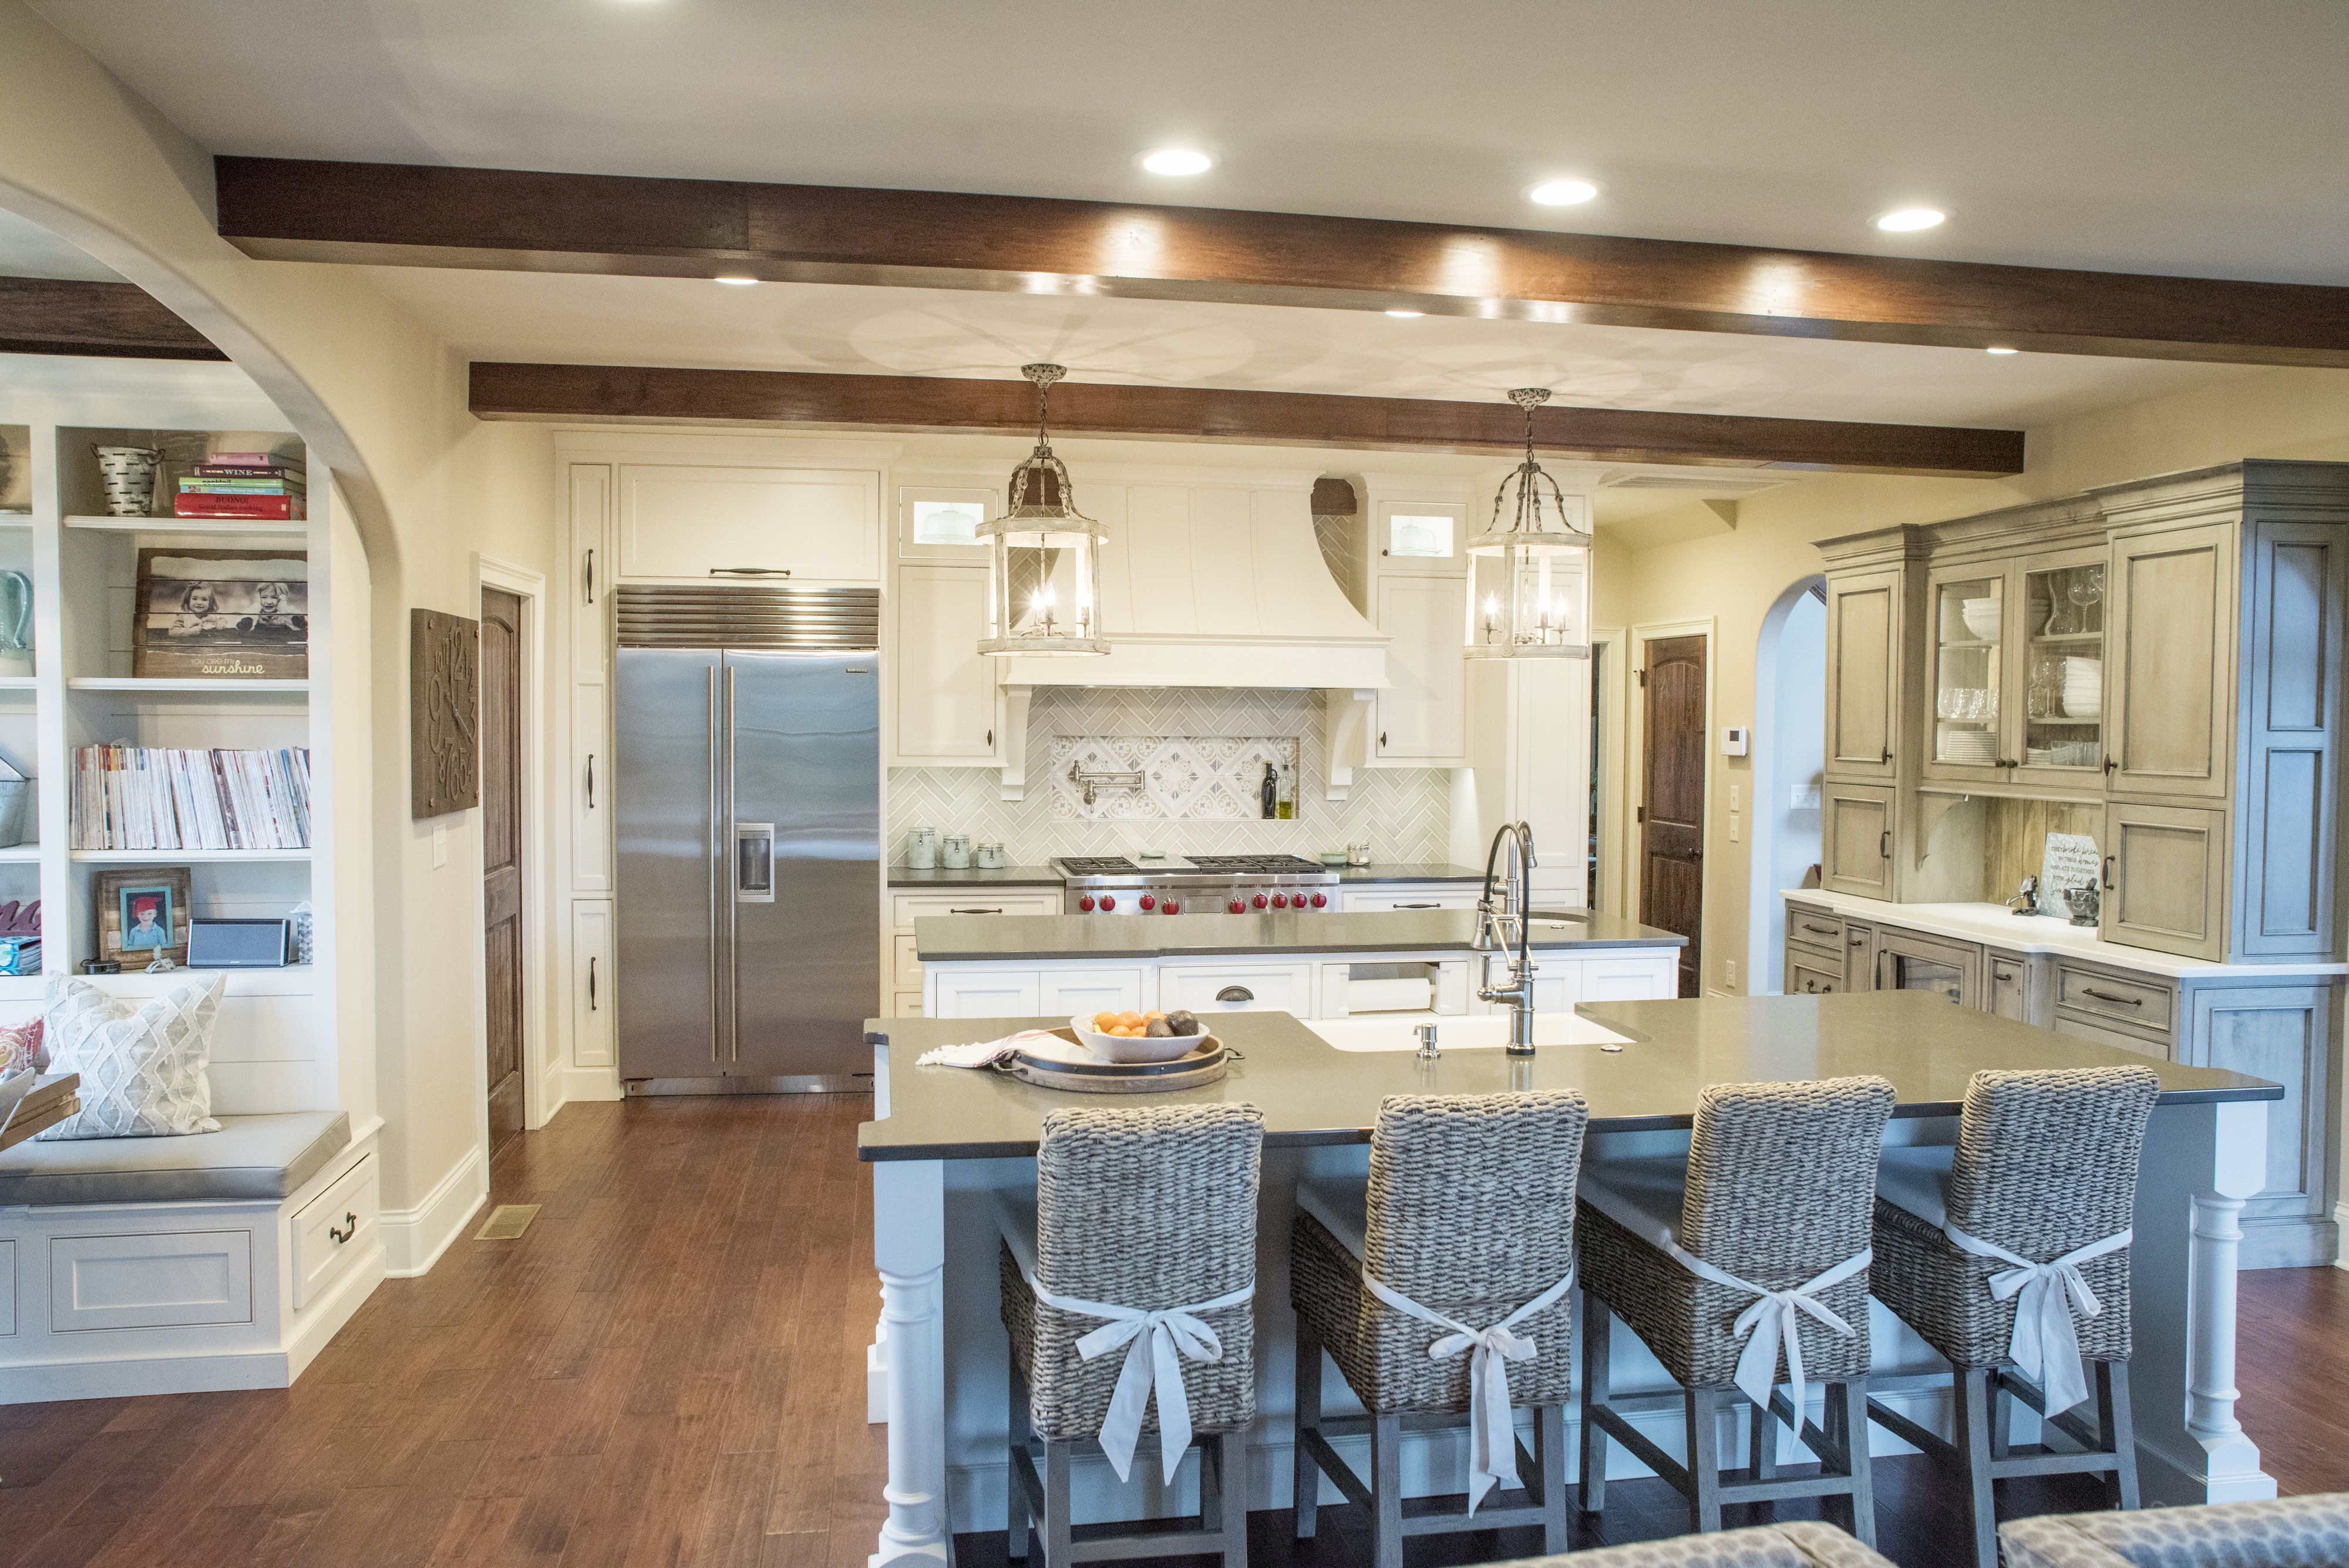 Crystal Cabinets Installing Cabinets Custom Kitchen Cabinets Custom Cabinetry